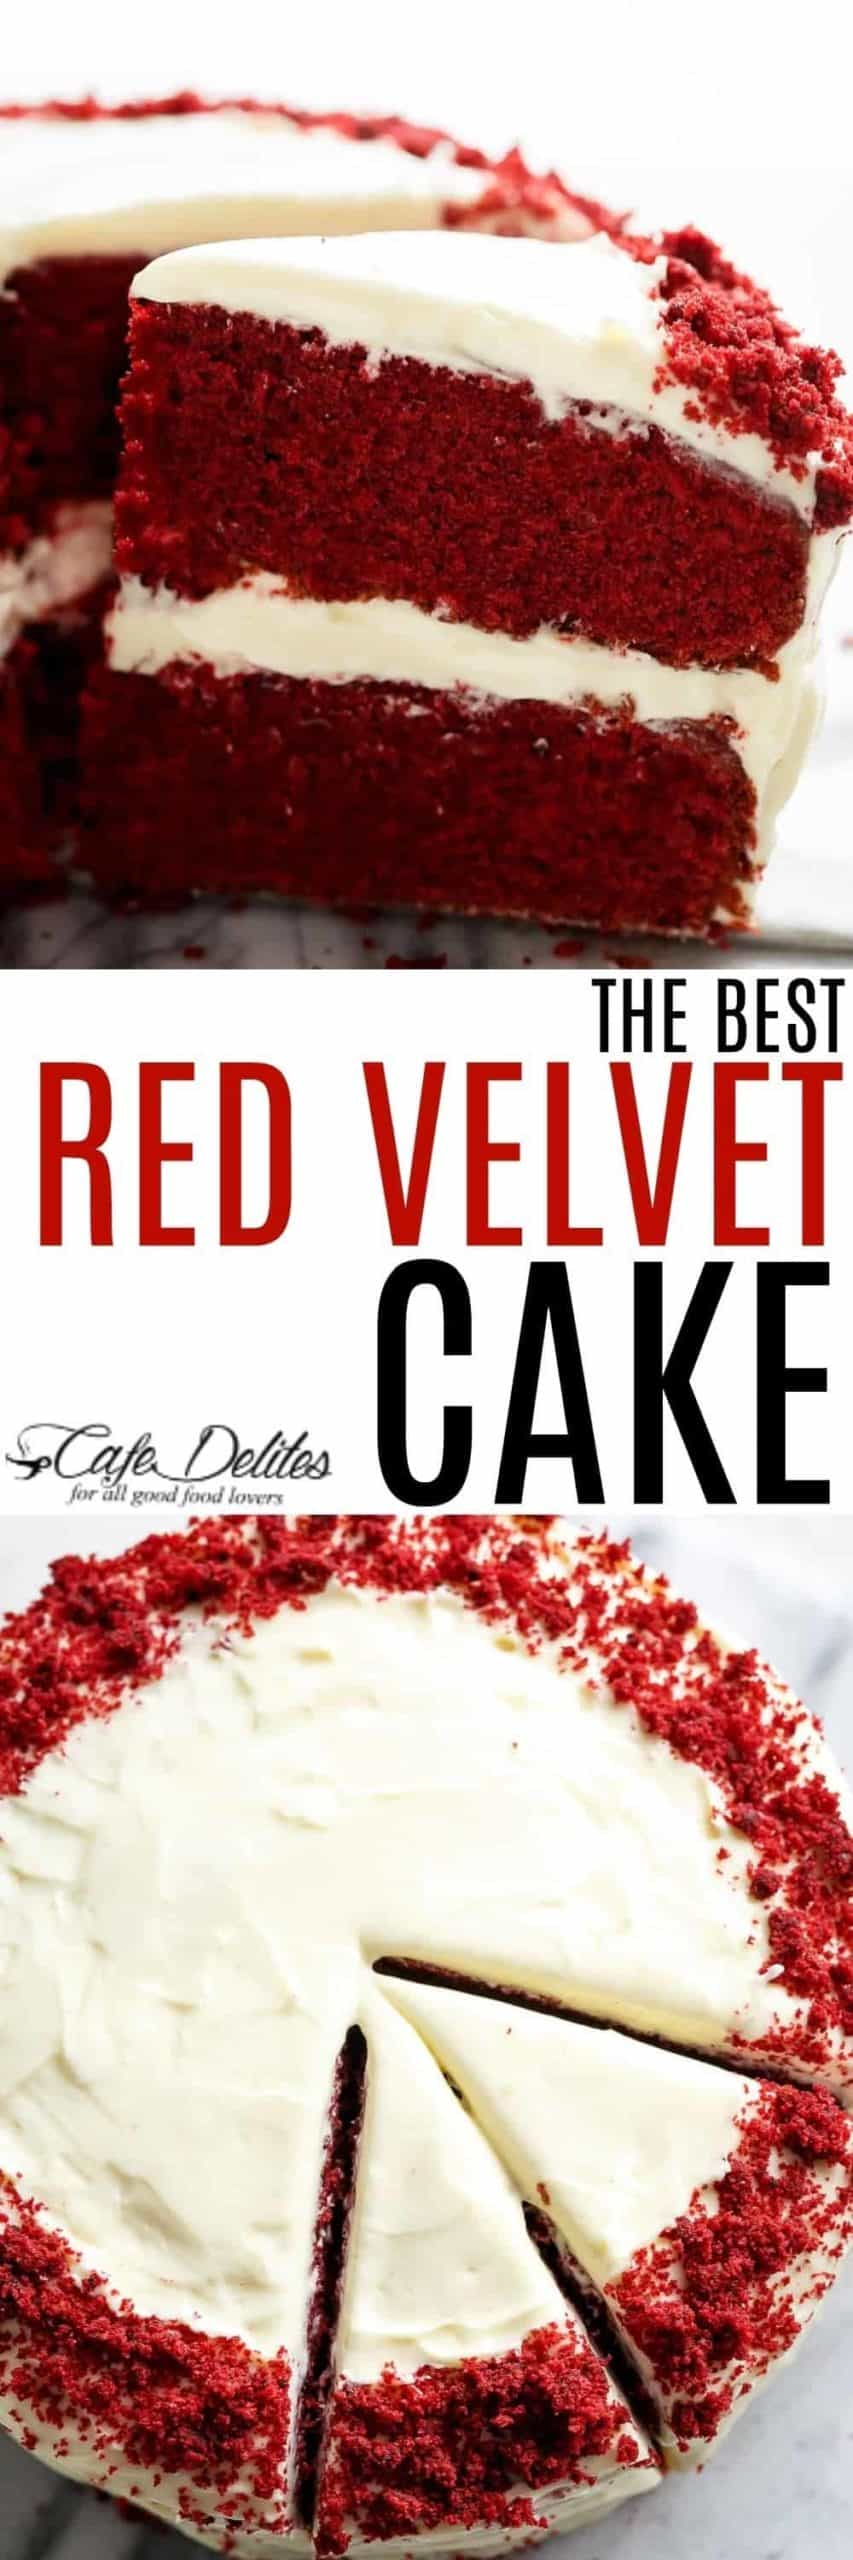 The most incredible Red Velvet Cake Recipe people go crazy for! | cafedelites.com